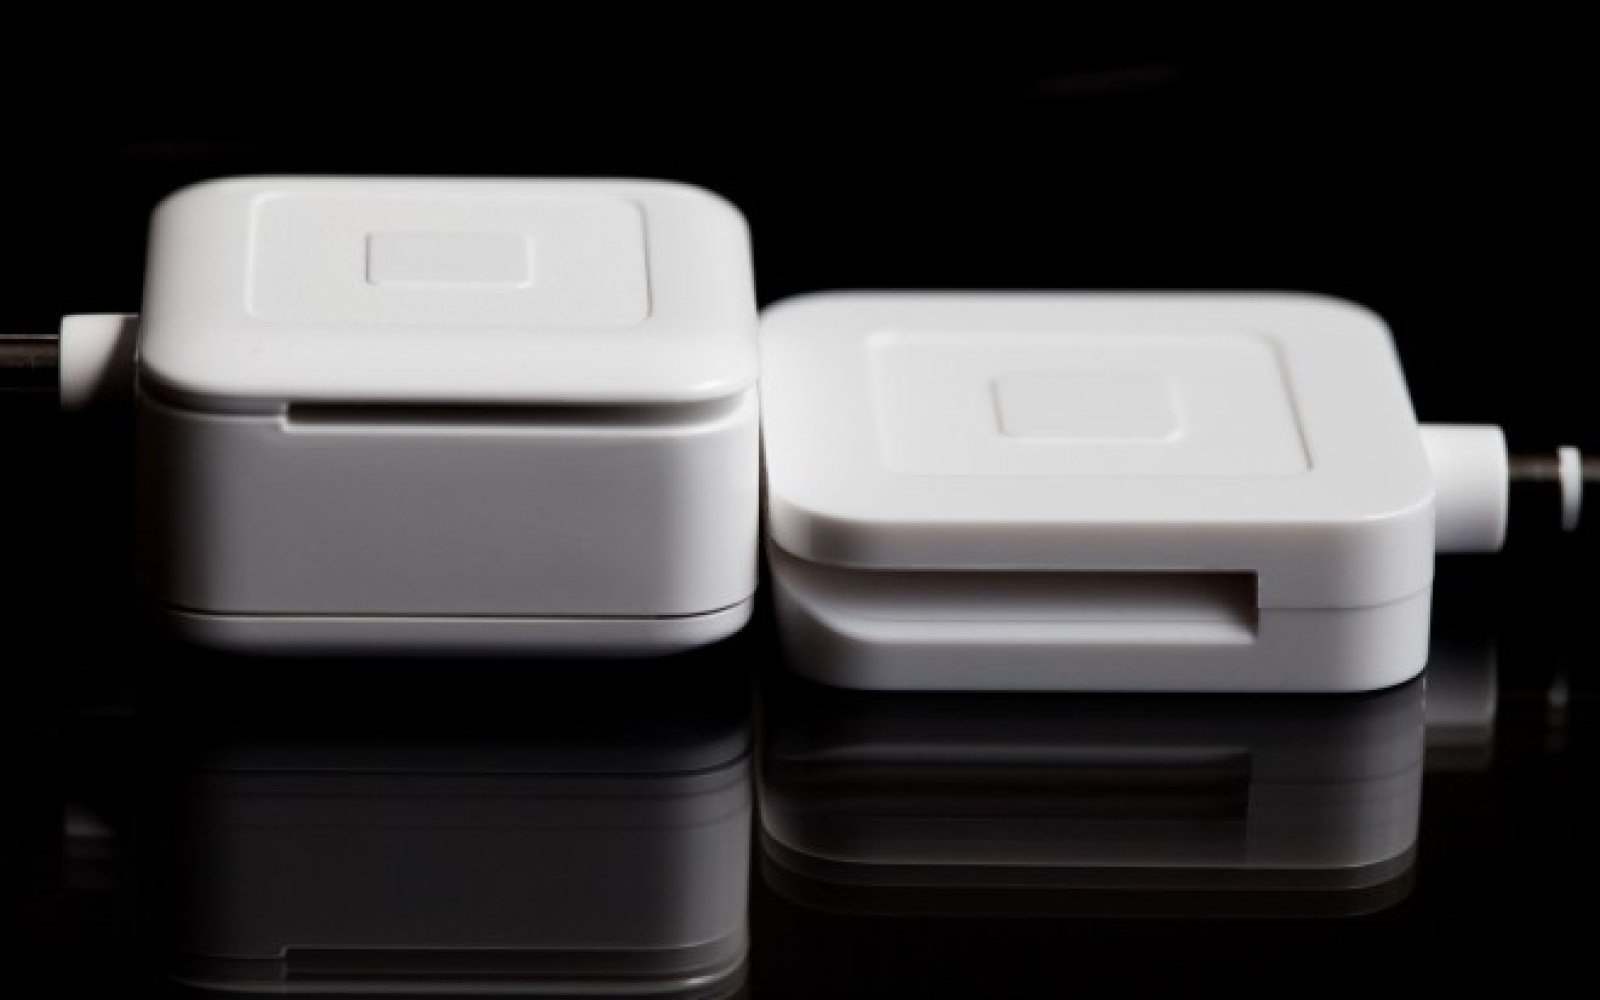 Former Apple accessories engineer helps trim down the Square card reader